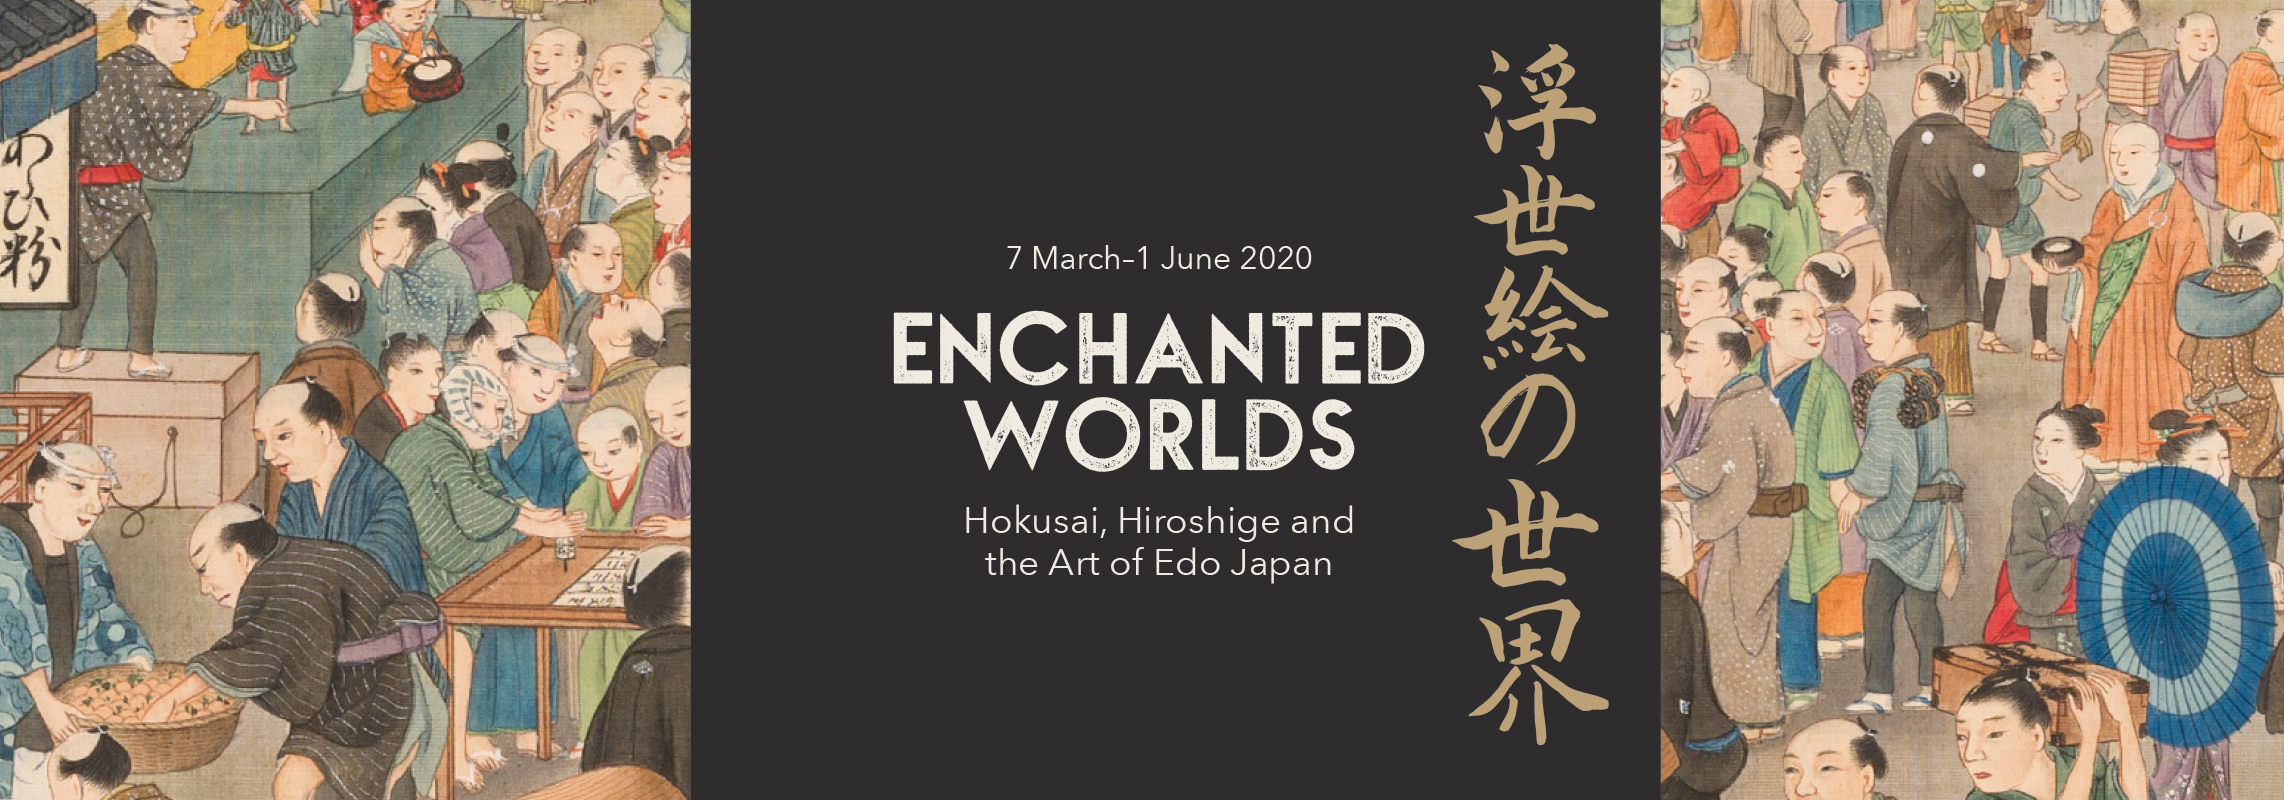 Enchanted Worlds: Hokusai, Hiroshige and the Art of Edo Japan